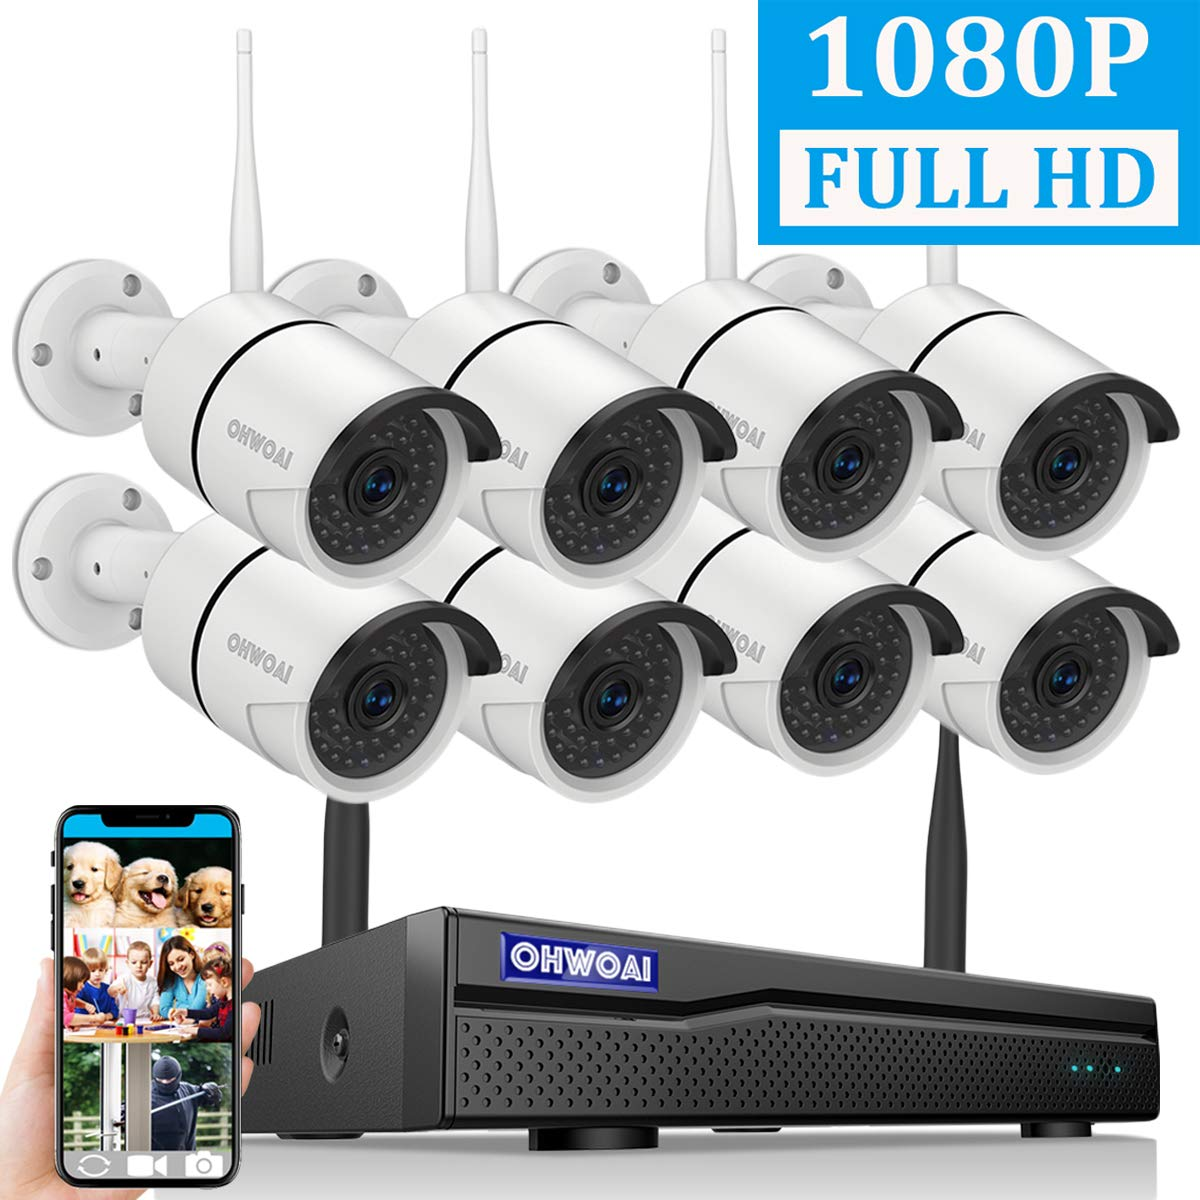 2019 Newest OHWOAI Security Camera System Wireless, 8CH 1080P NVR,8Pcs 1080P HD Outdoor Indoor IP Cameras,Home CCTV Surveillance System No Hard Drive Waterproof,Remote Access,Plug Play,Night Vision.